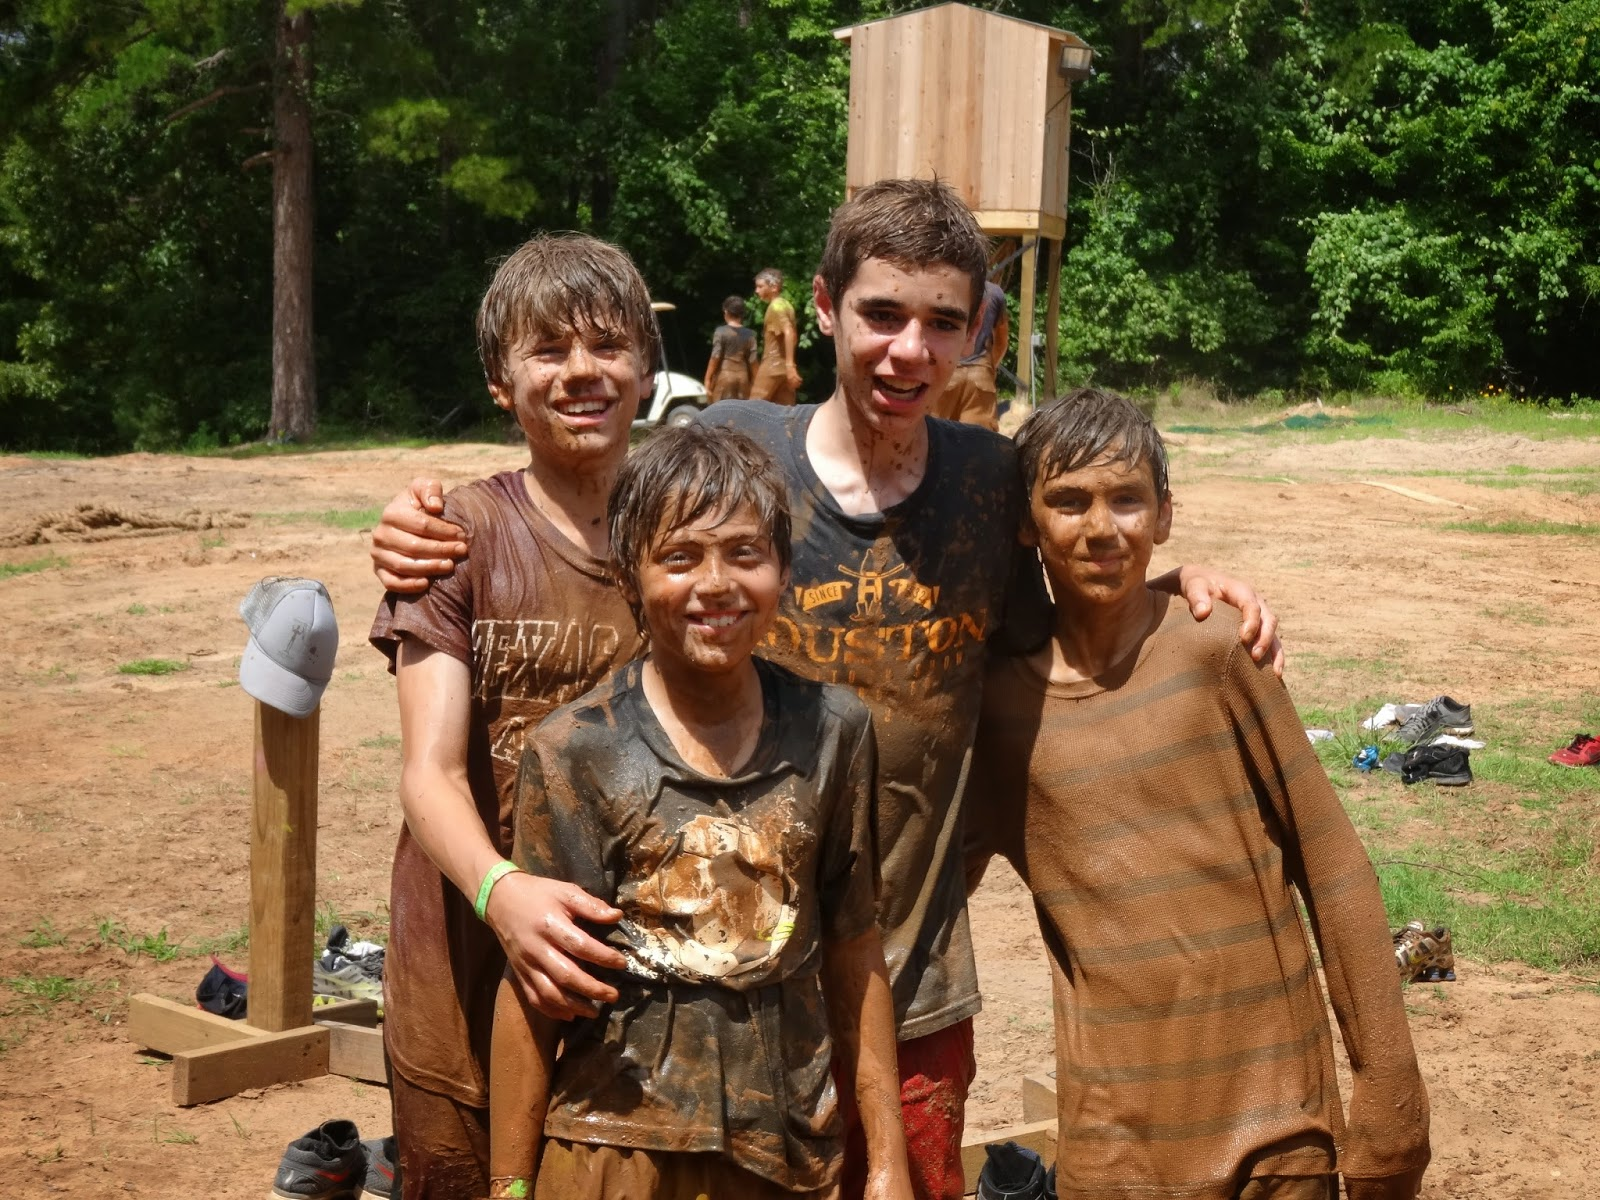 Enjoying the mud at Camp Texas